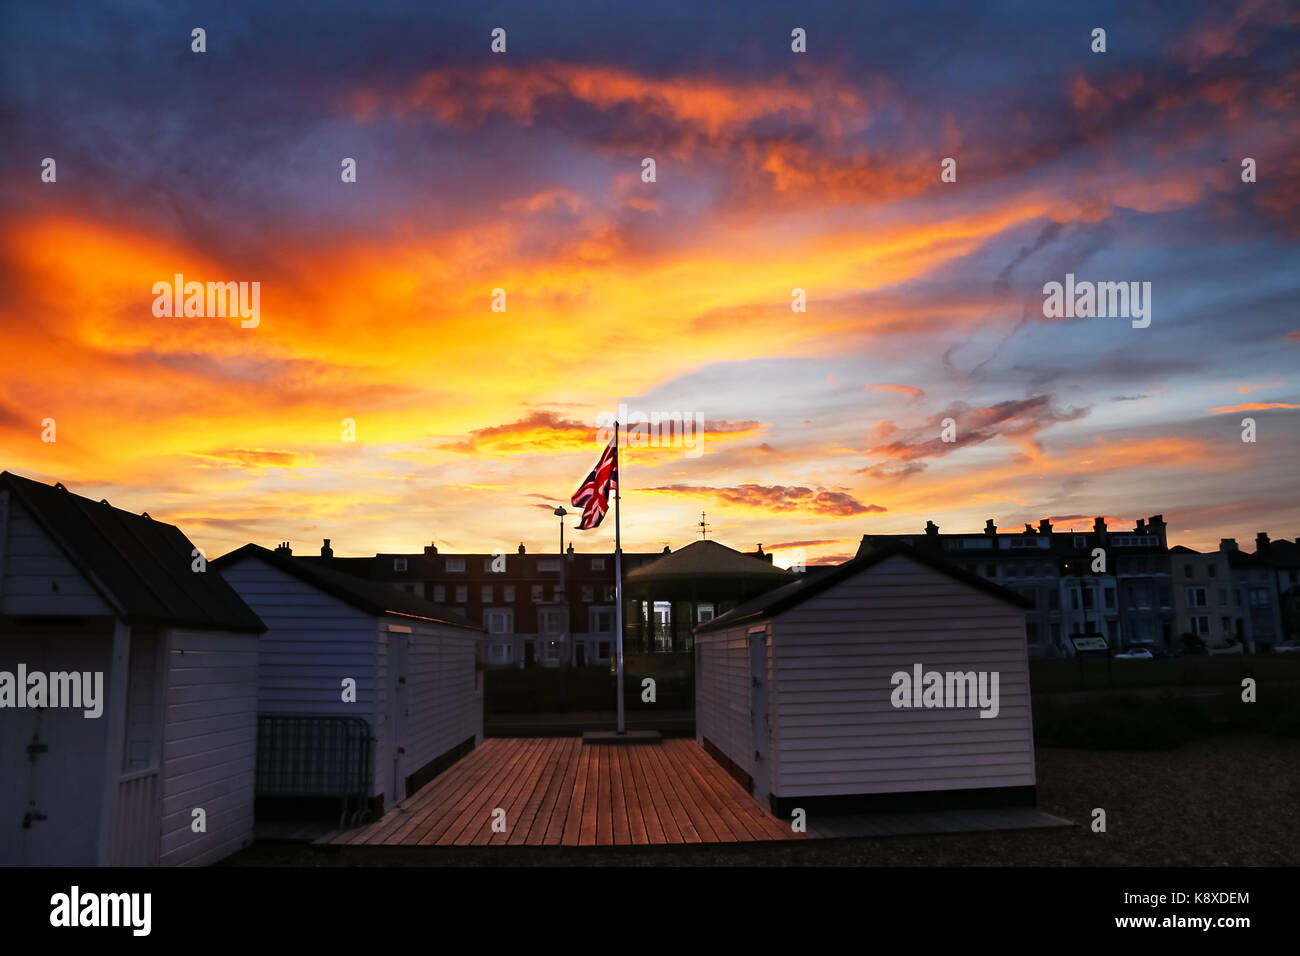 Walmer Bandstand, huts and Union Jack at sunset - Stock Image